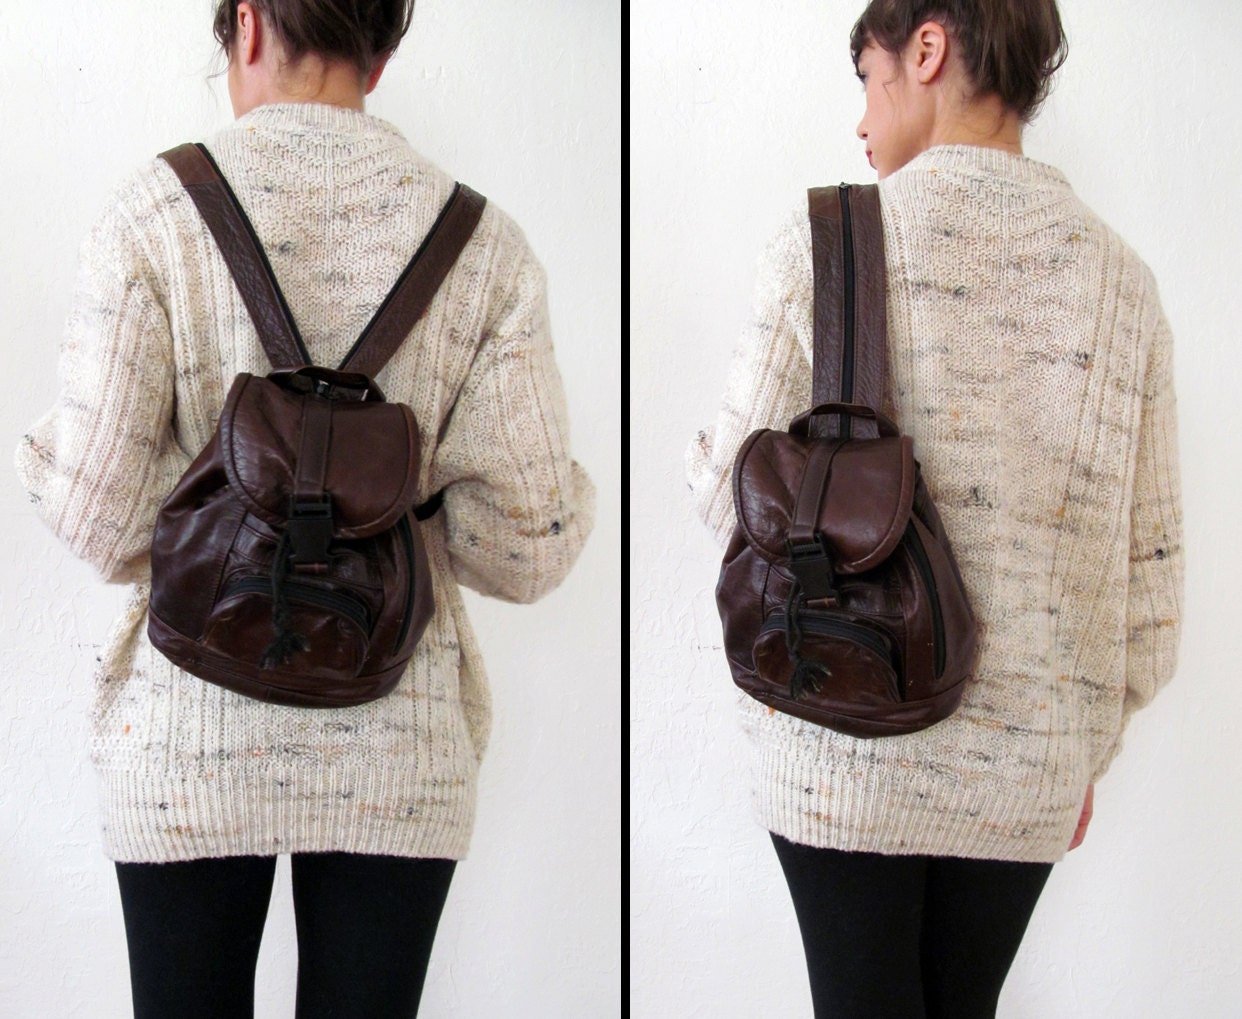 Small Backpack Purse - Crazy Backpacks